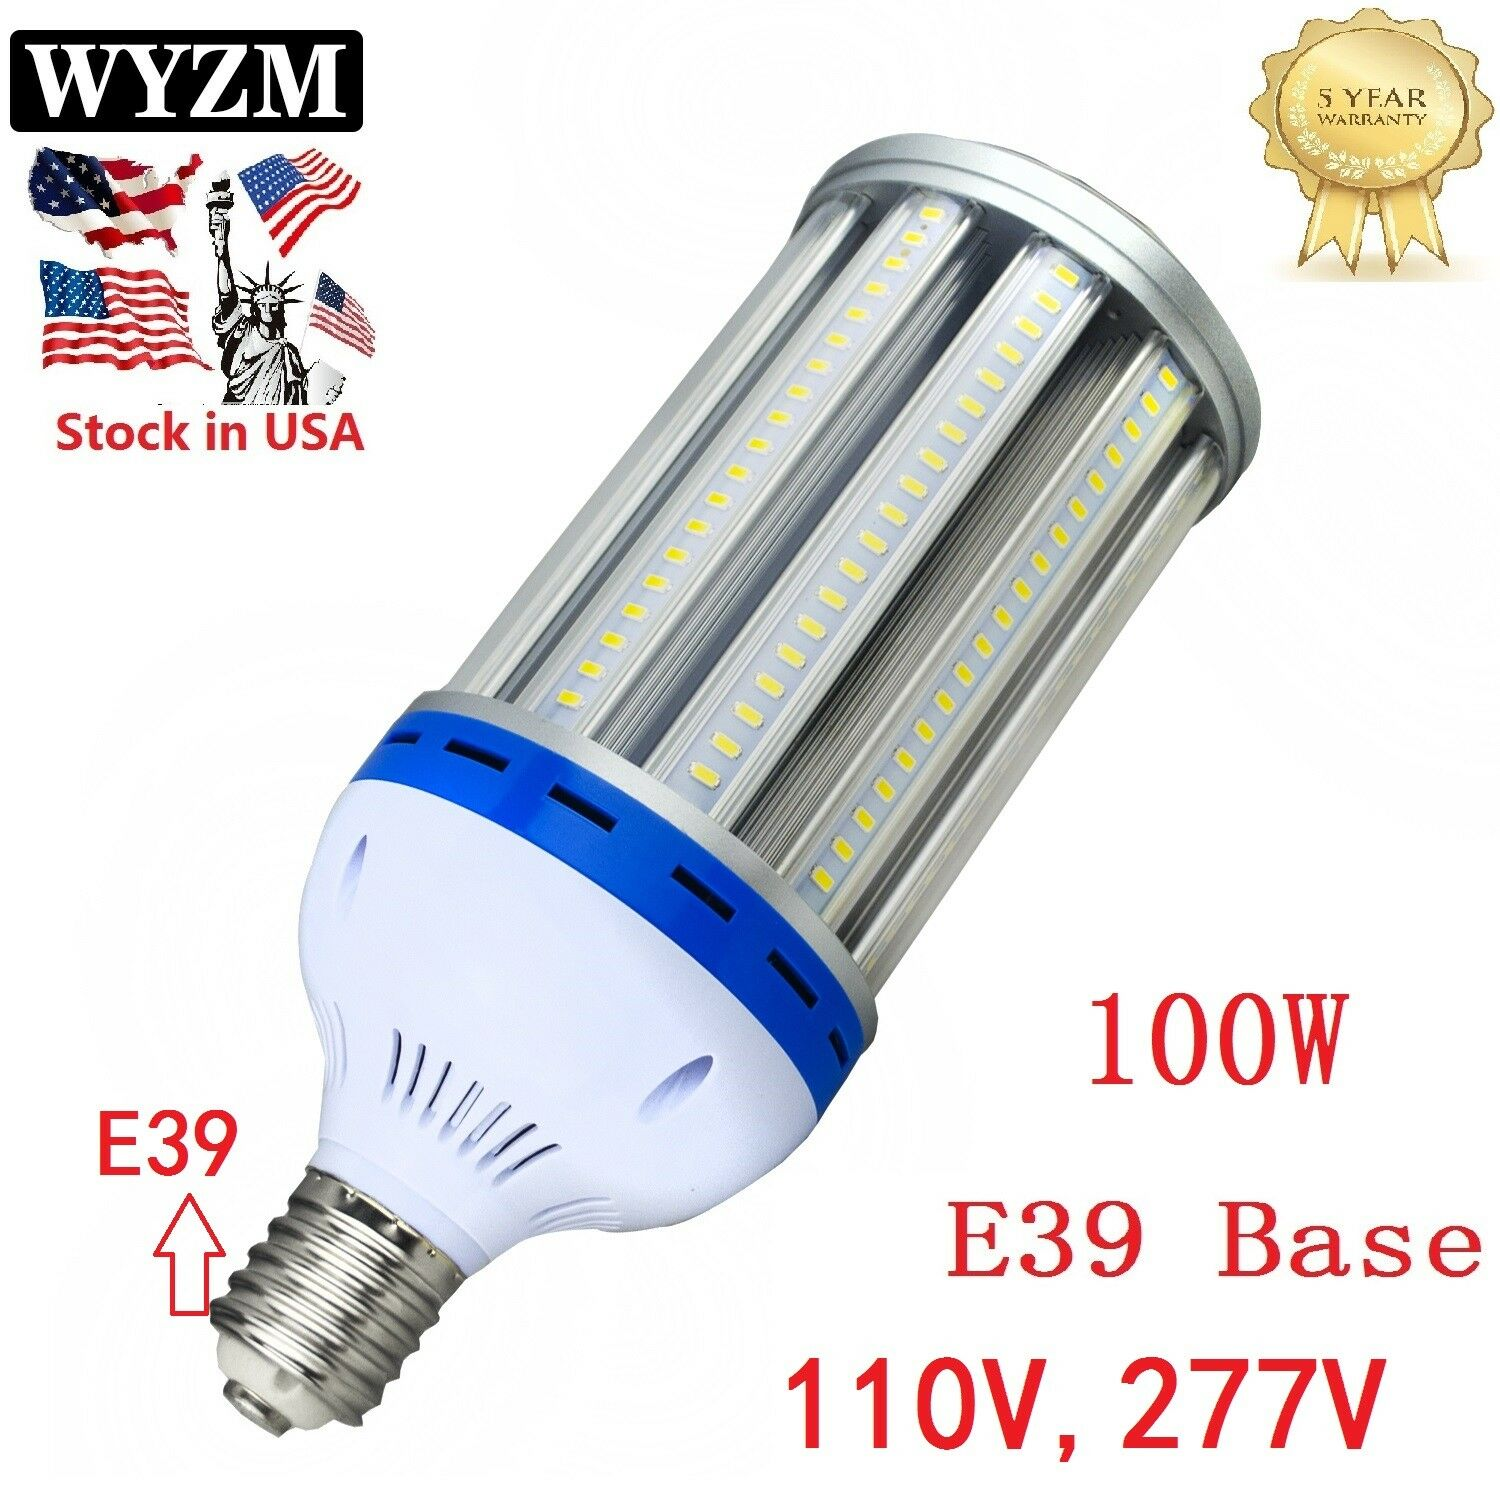 LED Corn Light Bulb E39 80W 100W 120W for Metal Halide HID HPS Replacement 5500K